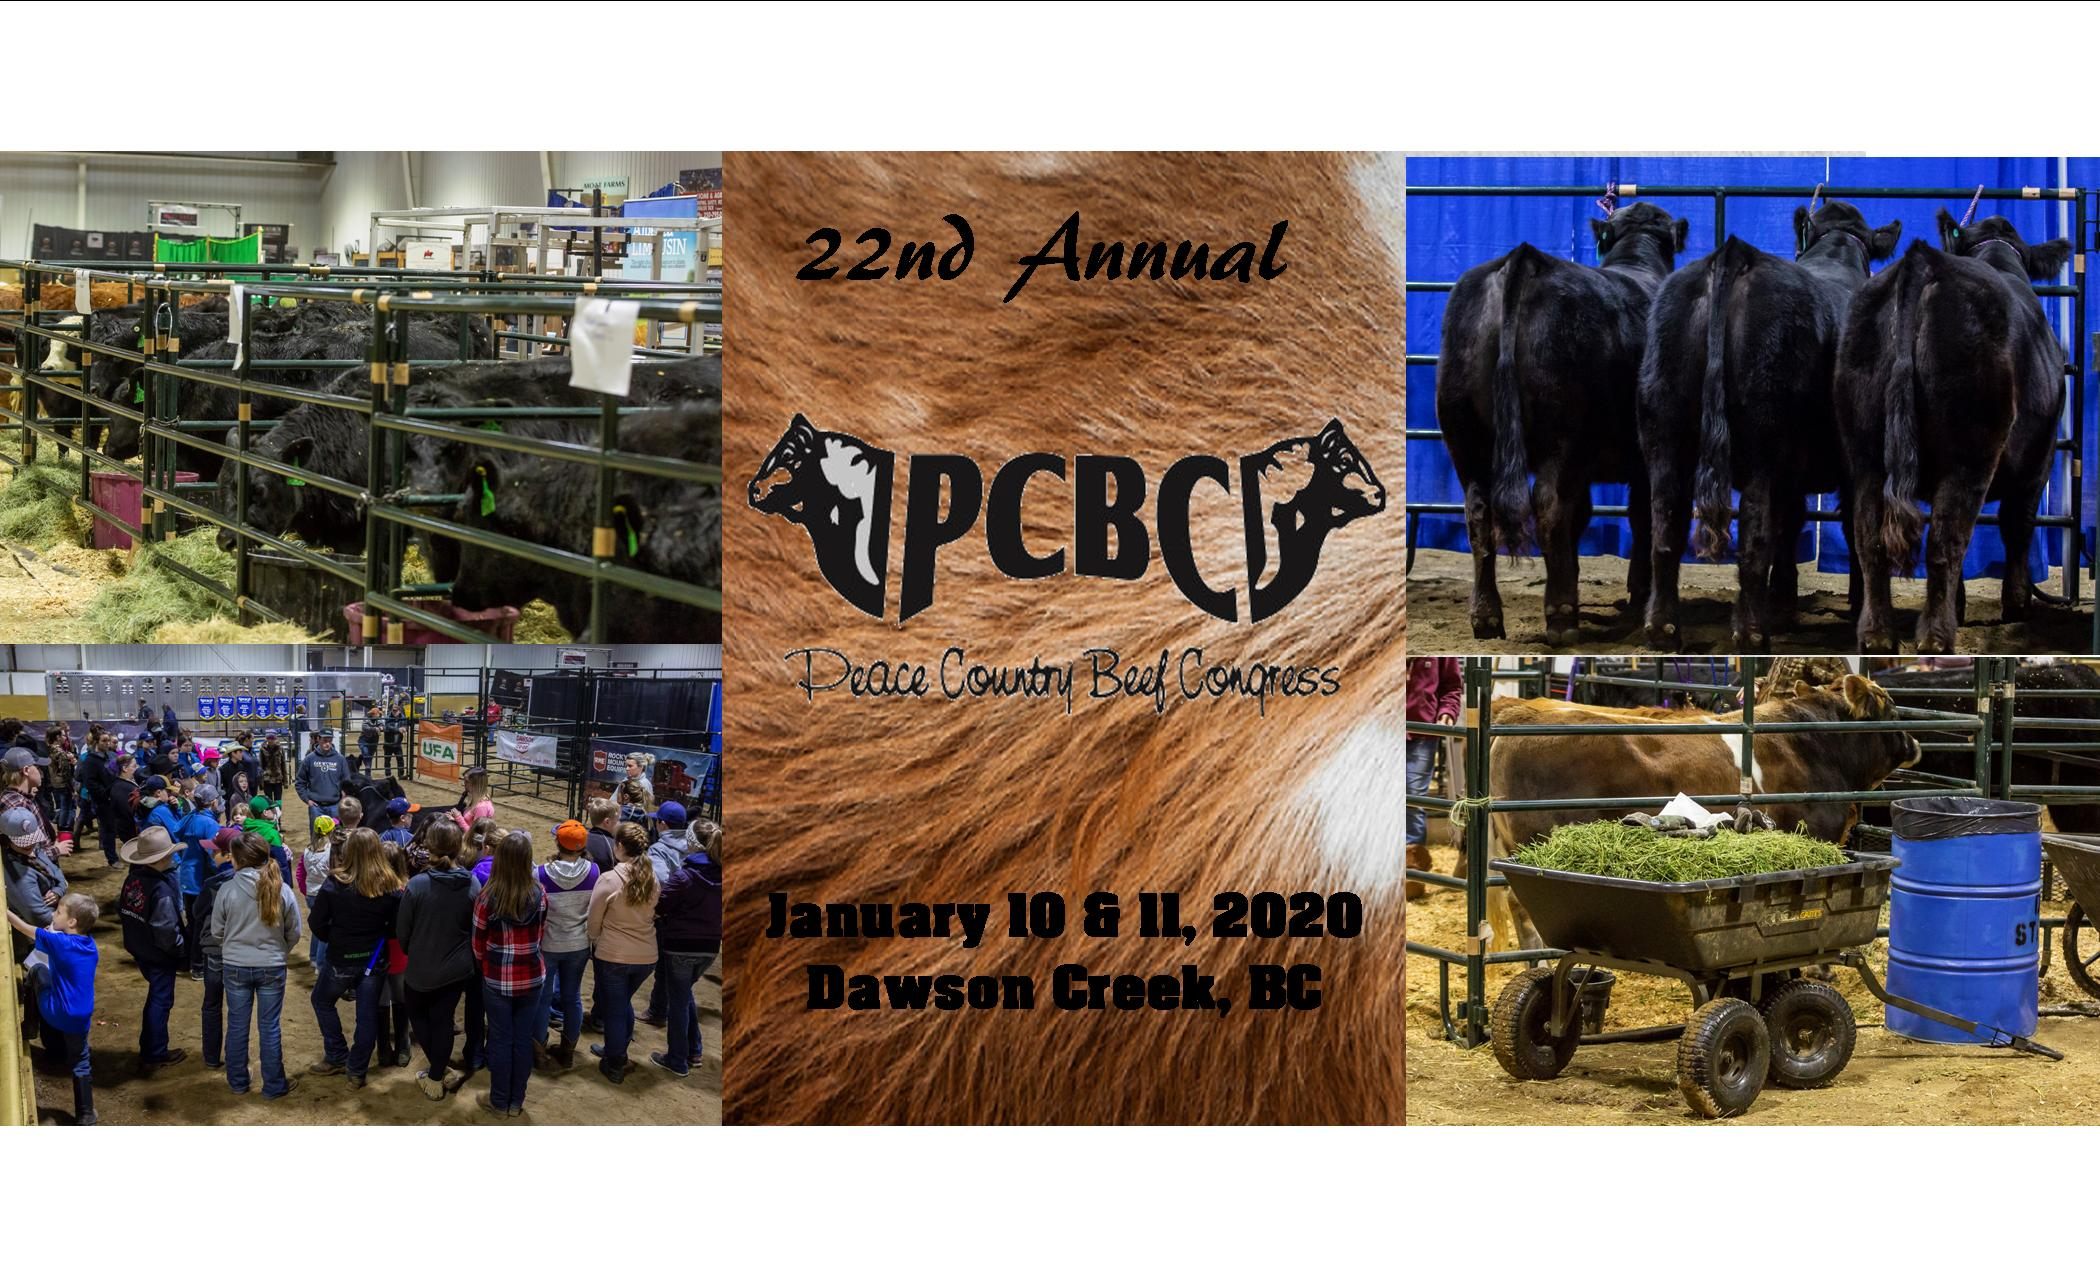 Peace Country Beef Congress